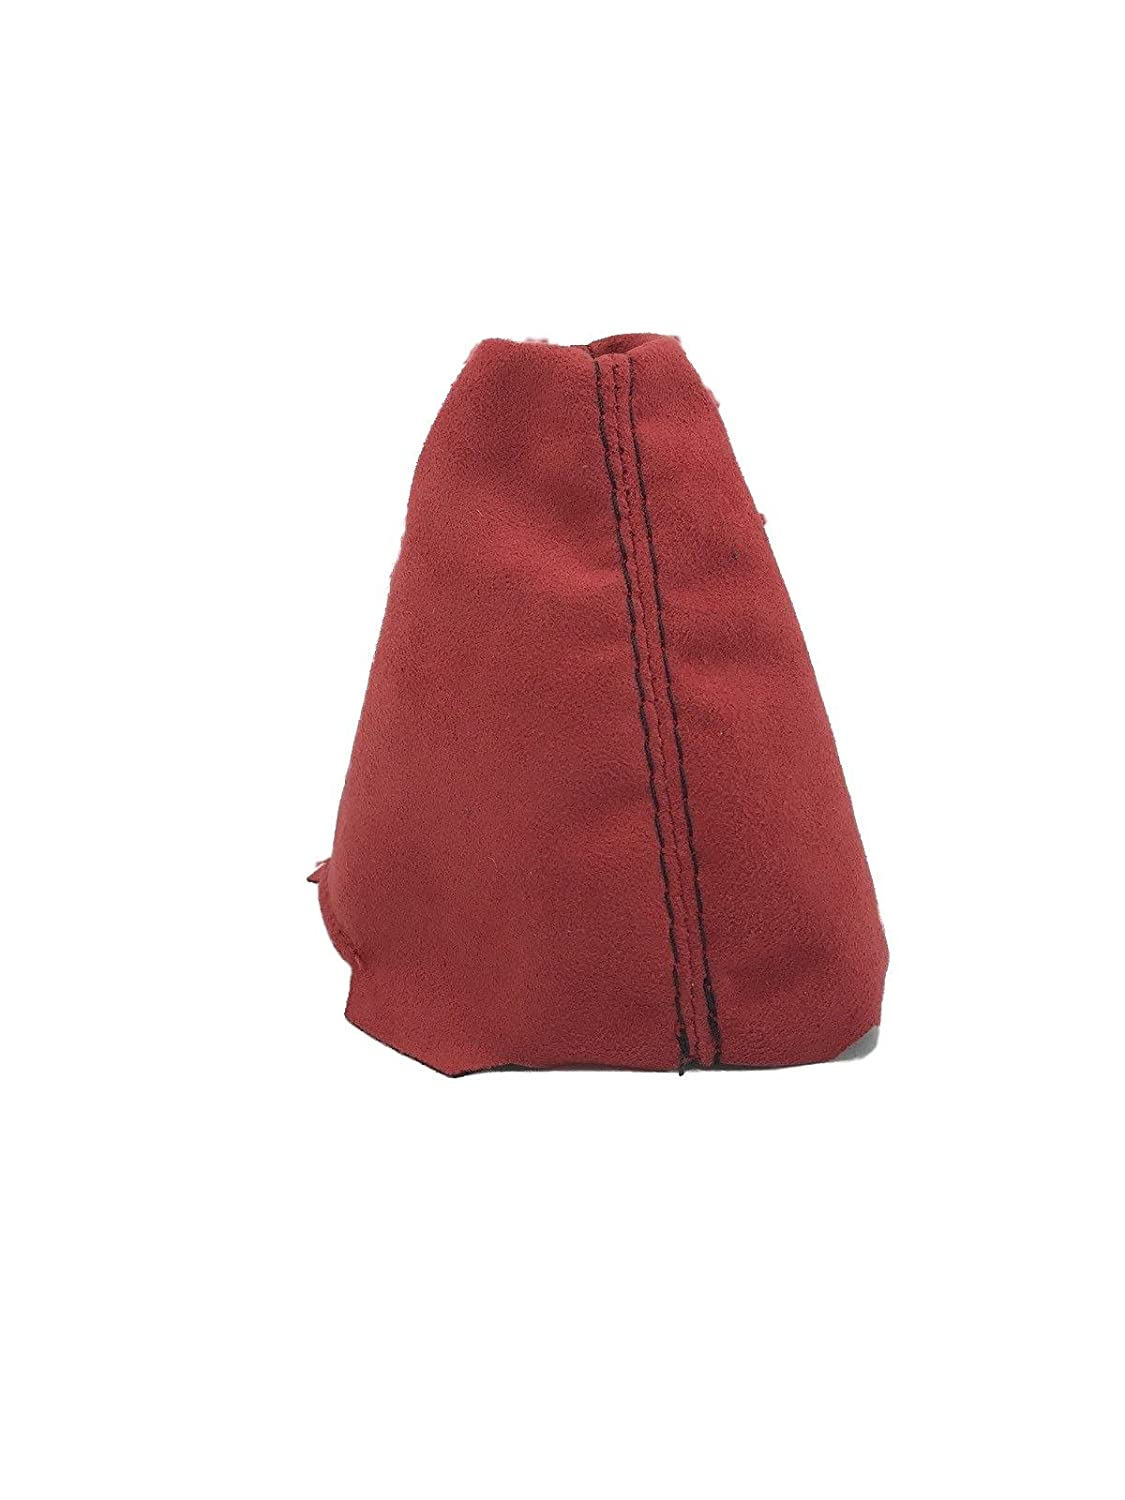 For 06-11 Honda Civic Si Shift Boot Red Suede Black Stitch